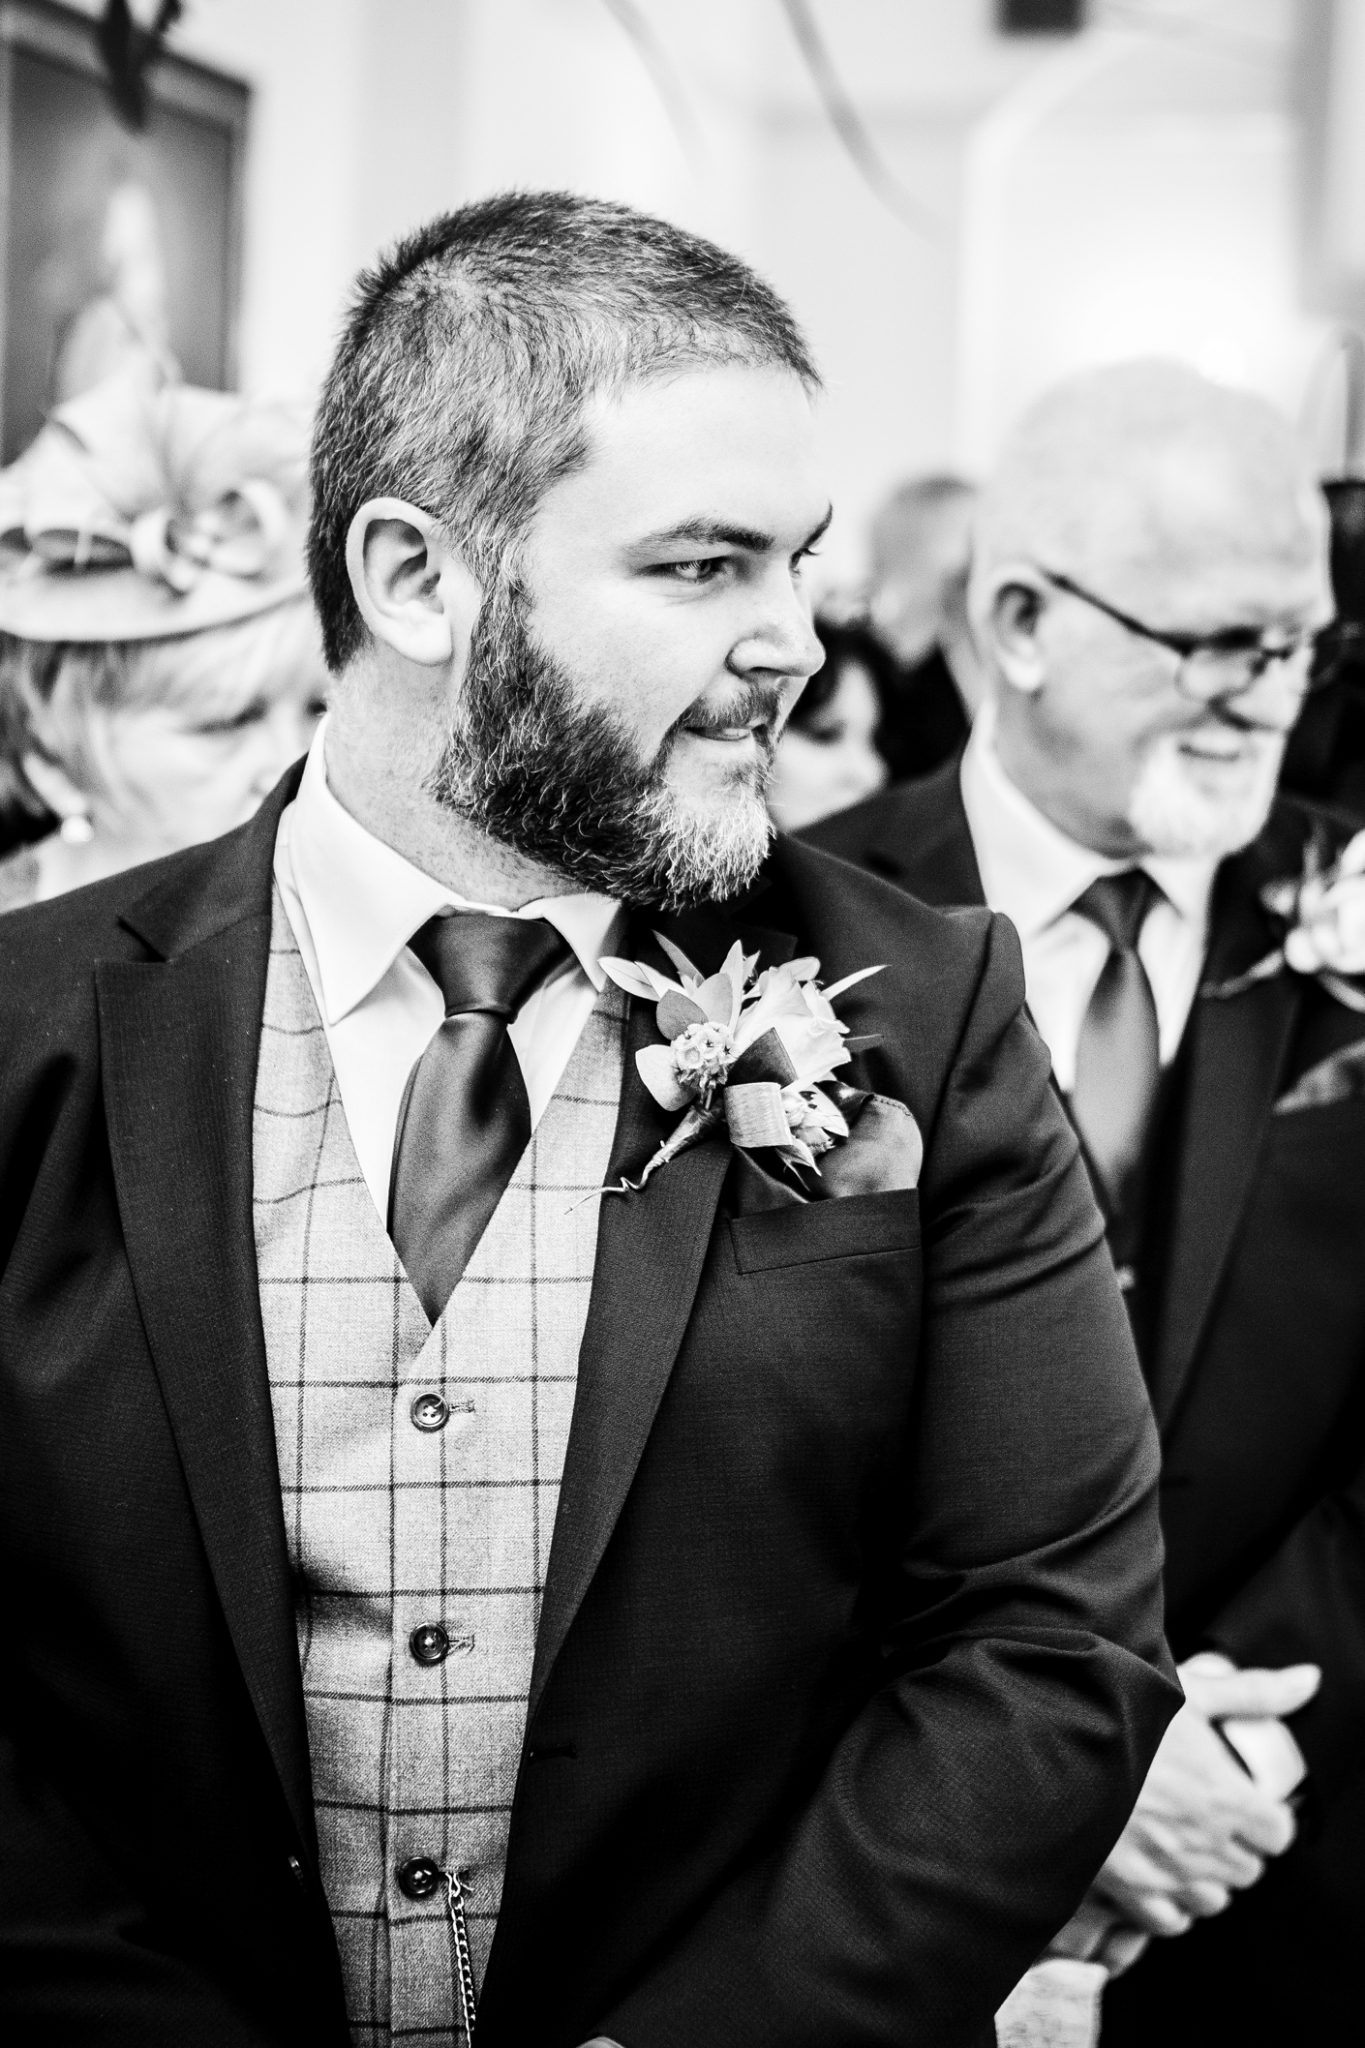 the-groom-before-the-wedding-ceremony-at-nunsmere-hall-cheshire